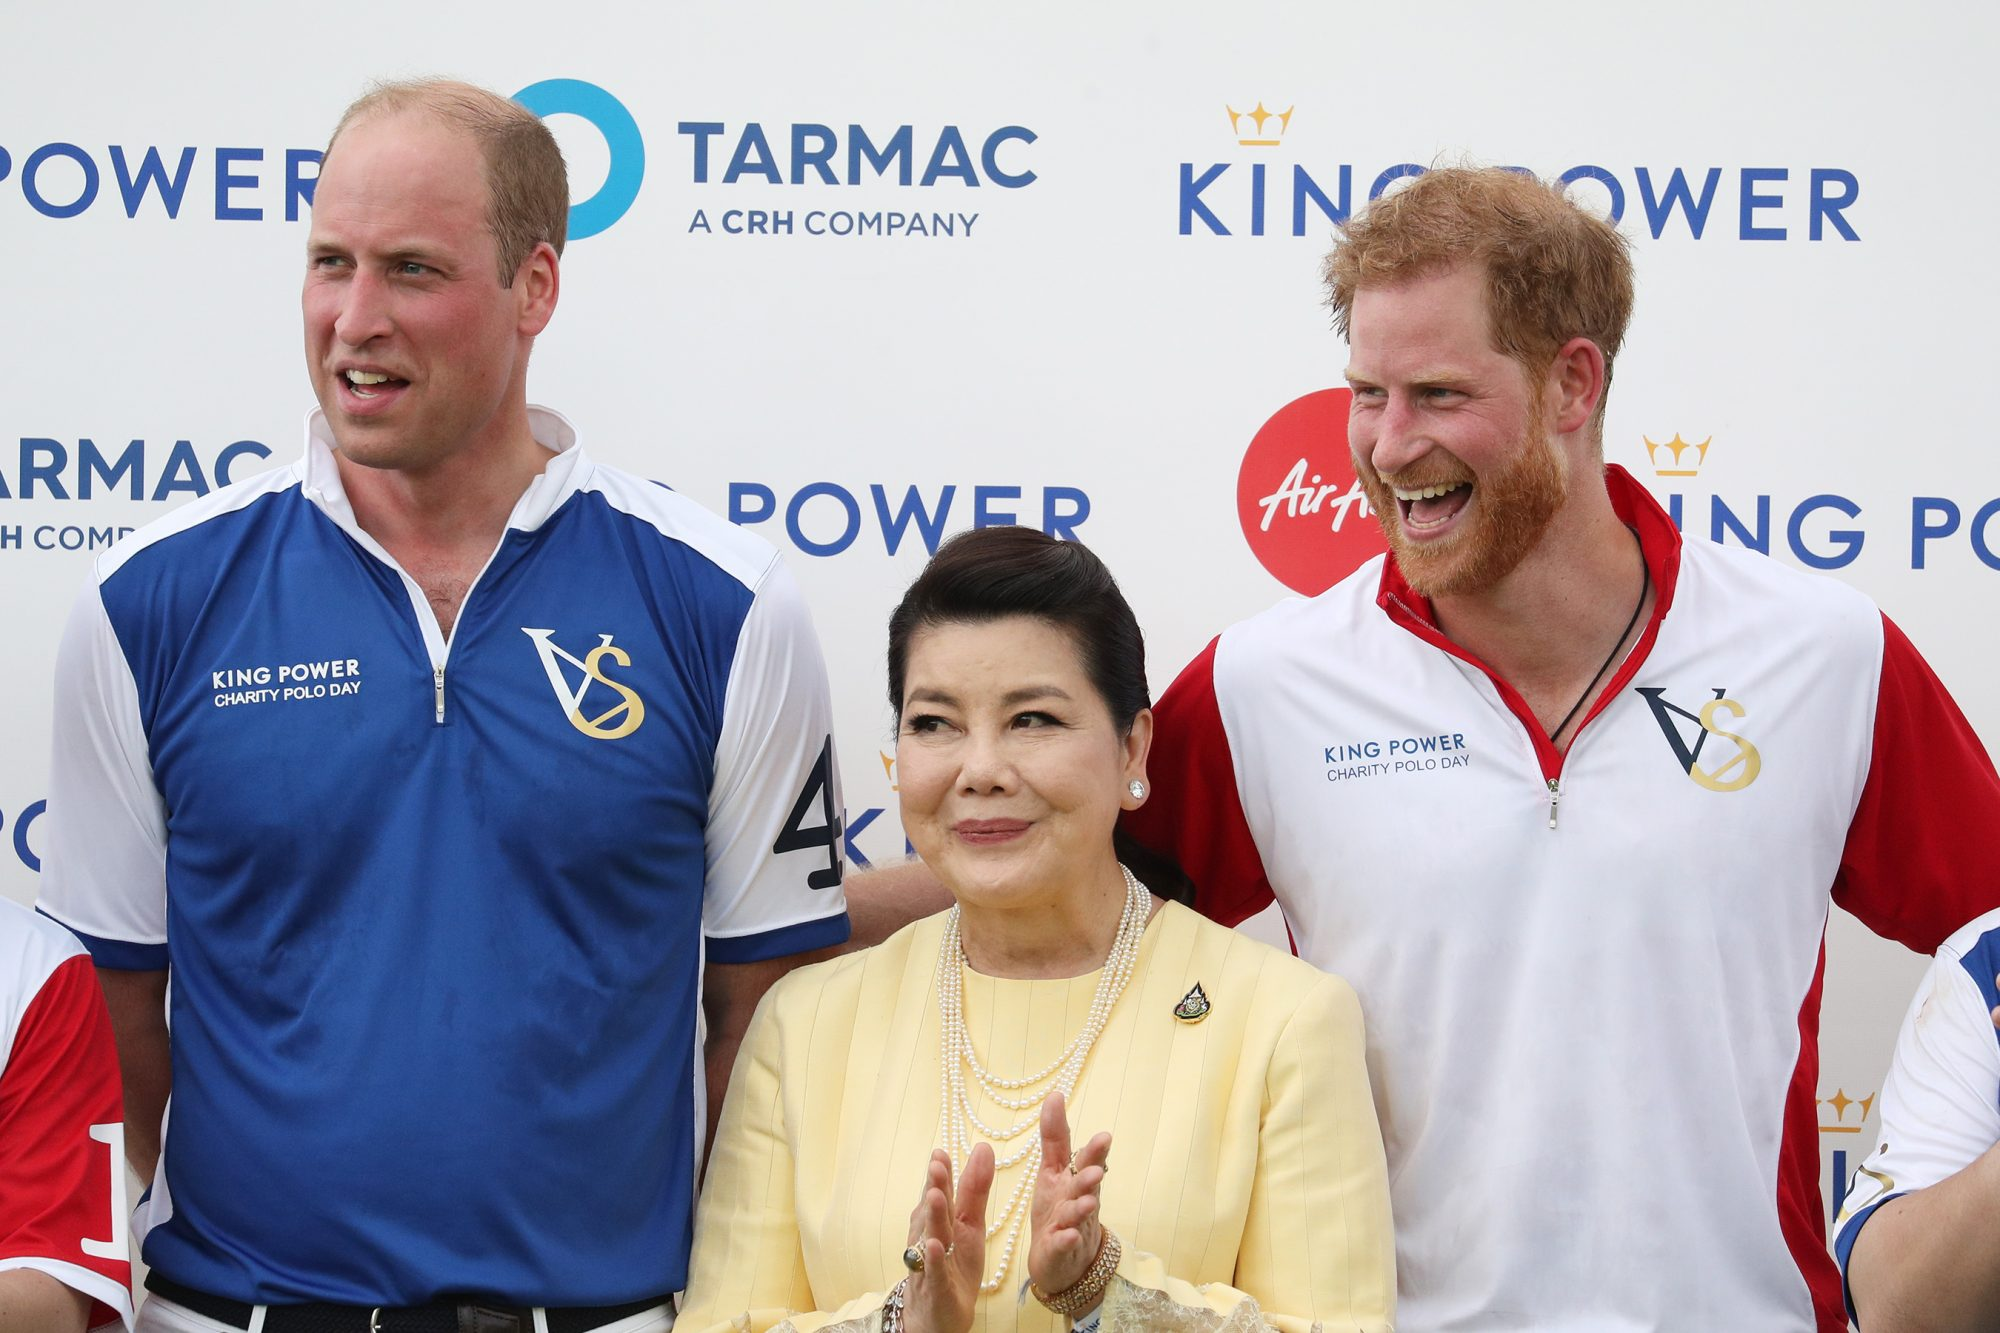 The Duke of Cambridge and Duke of Sussex, with Aimon Srivaddhanaprabha, after they played in the Khun Vichai Srivaddhanaprabha Memorial Polo Trophy during the King Power Royal Charity Polo Day at Billingbear Polo Club, Wokingham, Berkshire. (Photo by Andrew Matthews/PA Images via Getty Images)